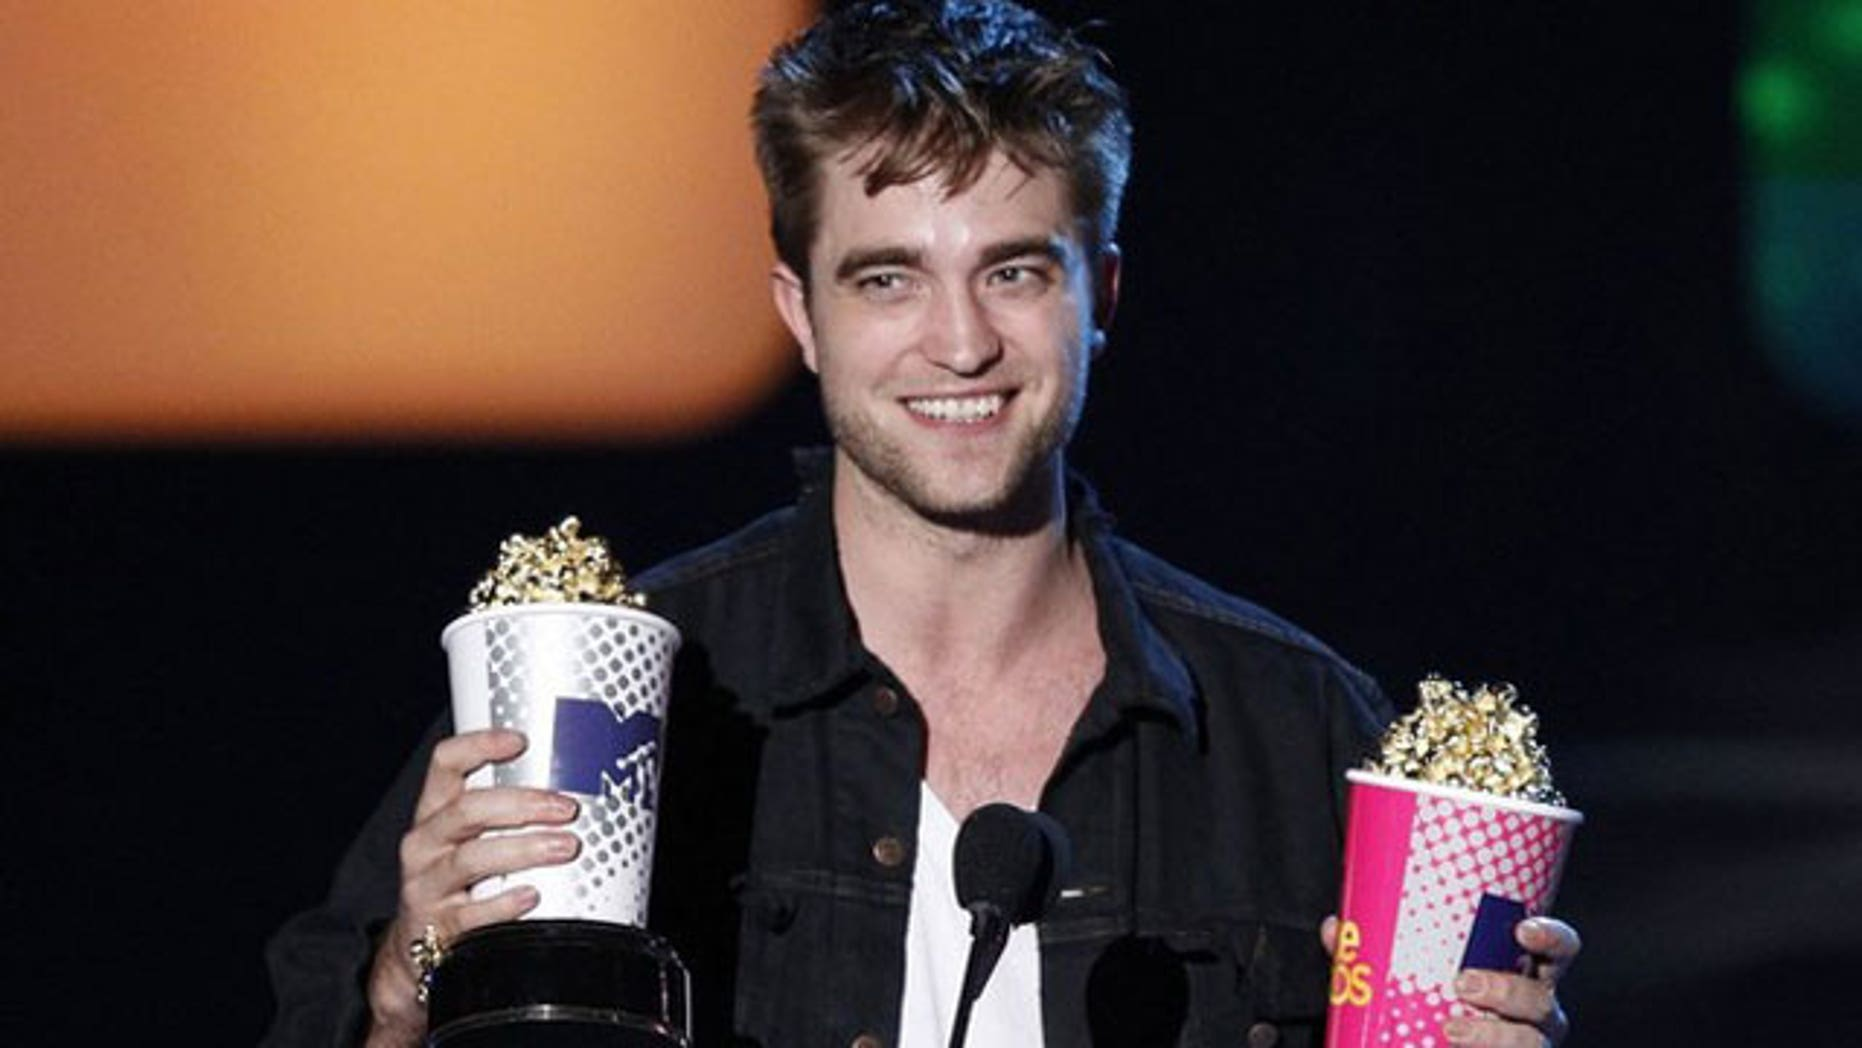 Robert Pattinson, shown here at an MTV Awards ceremony.